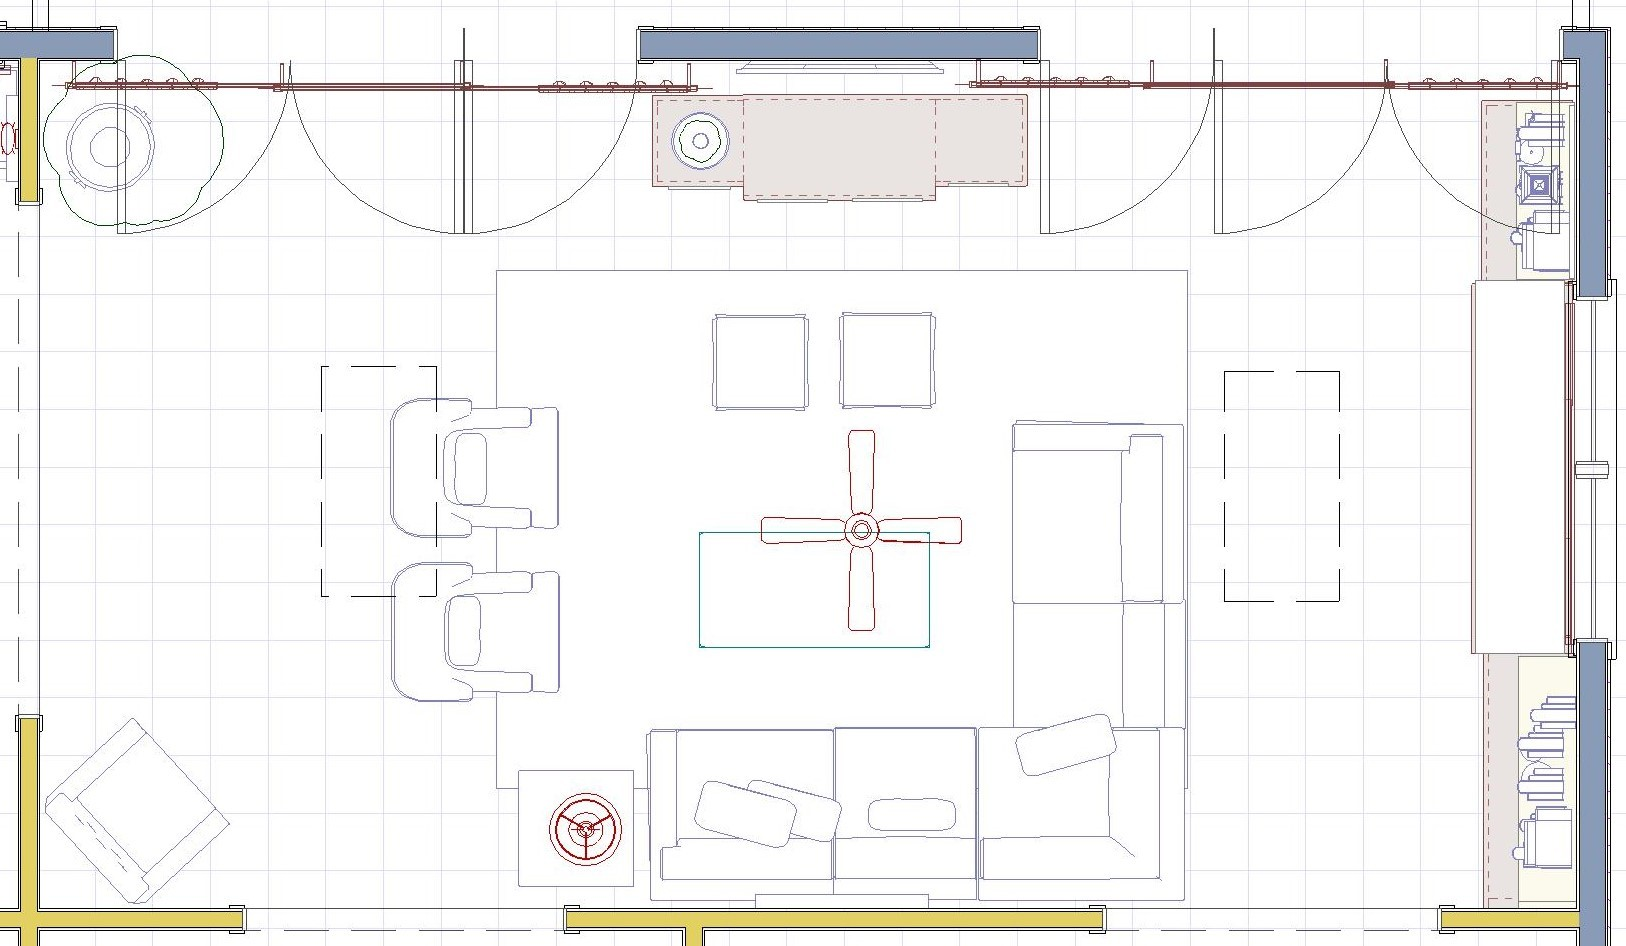 Furniture plan chairs facing built-in L sectional.jpg